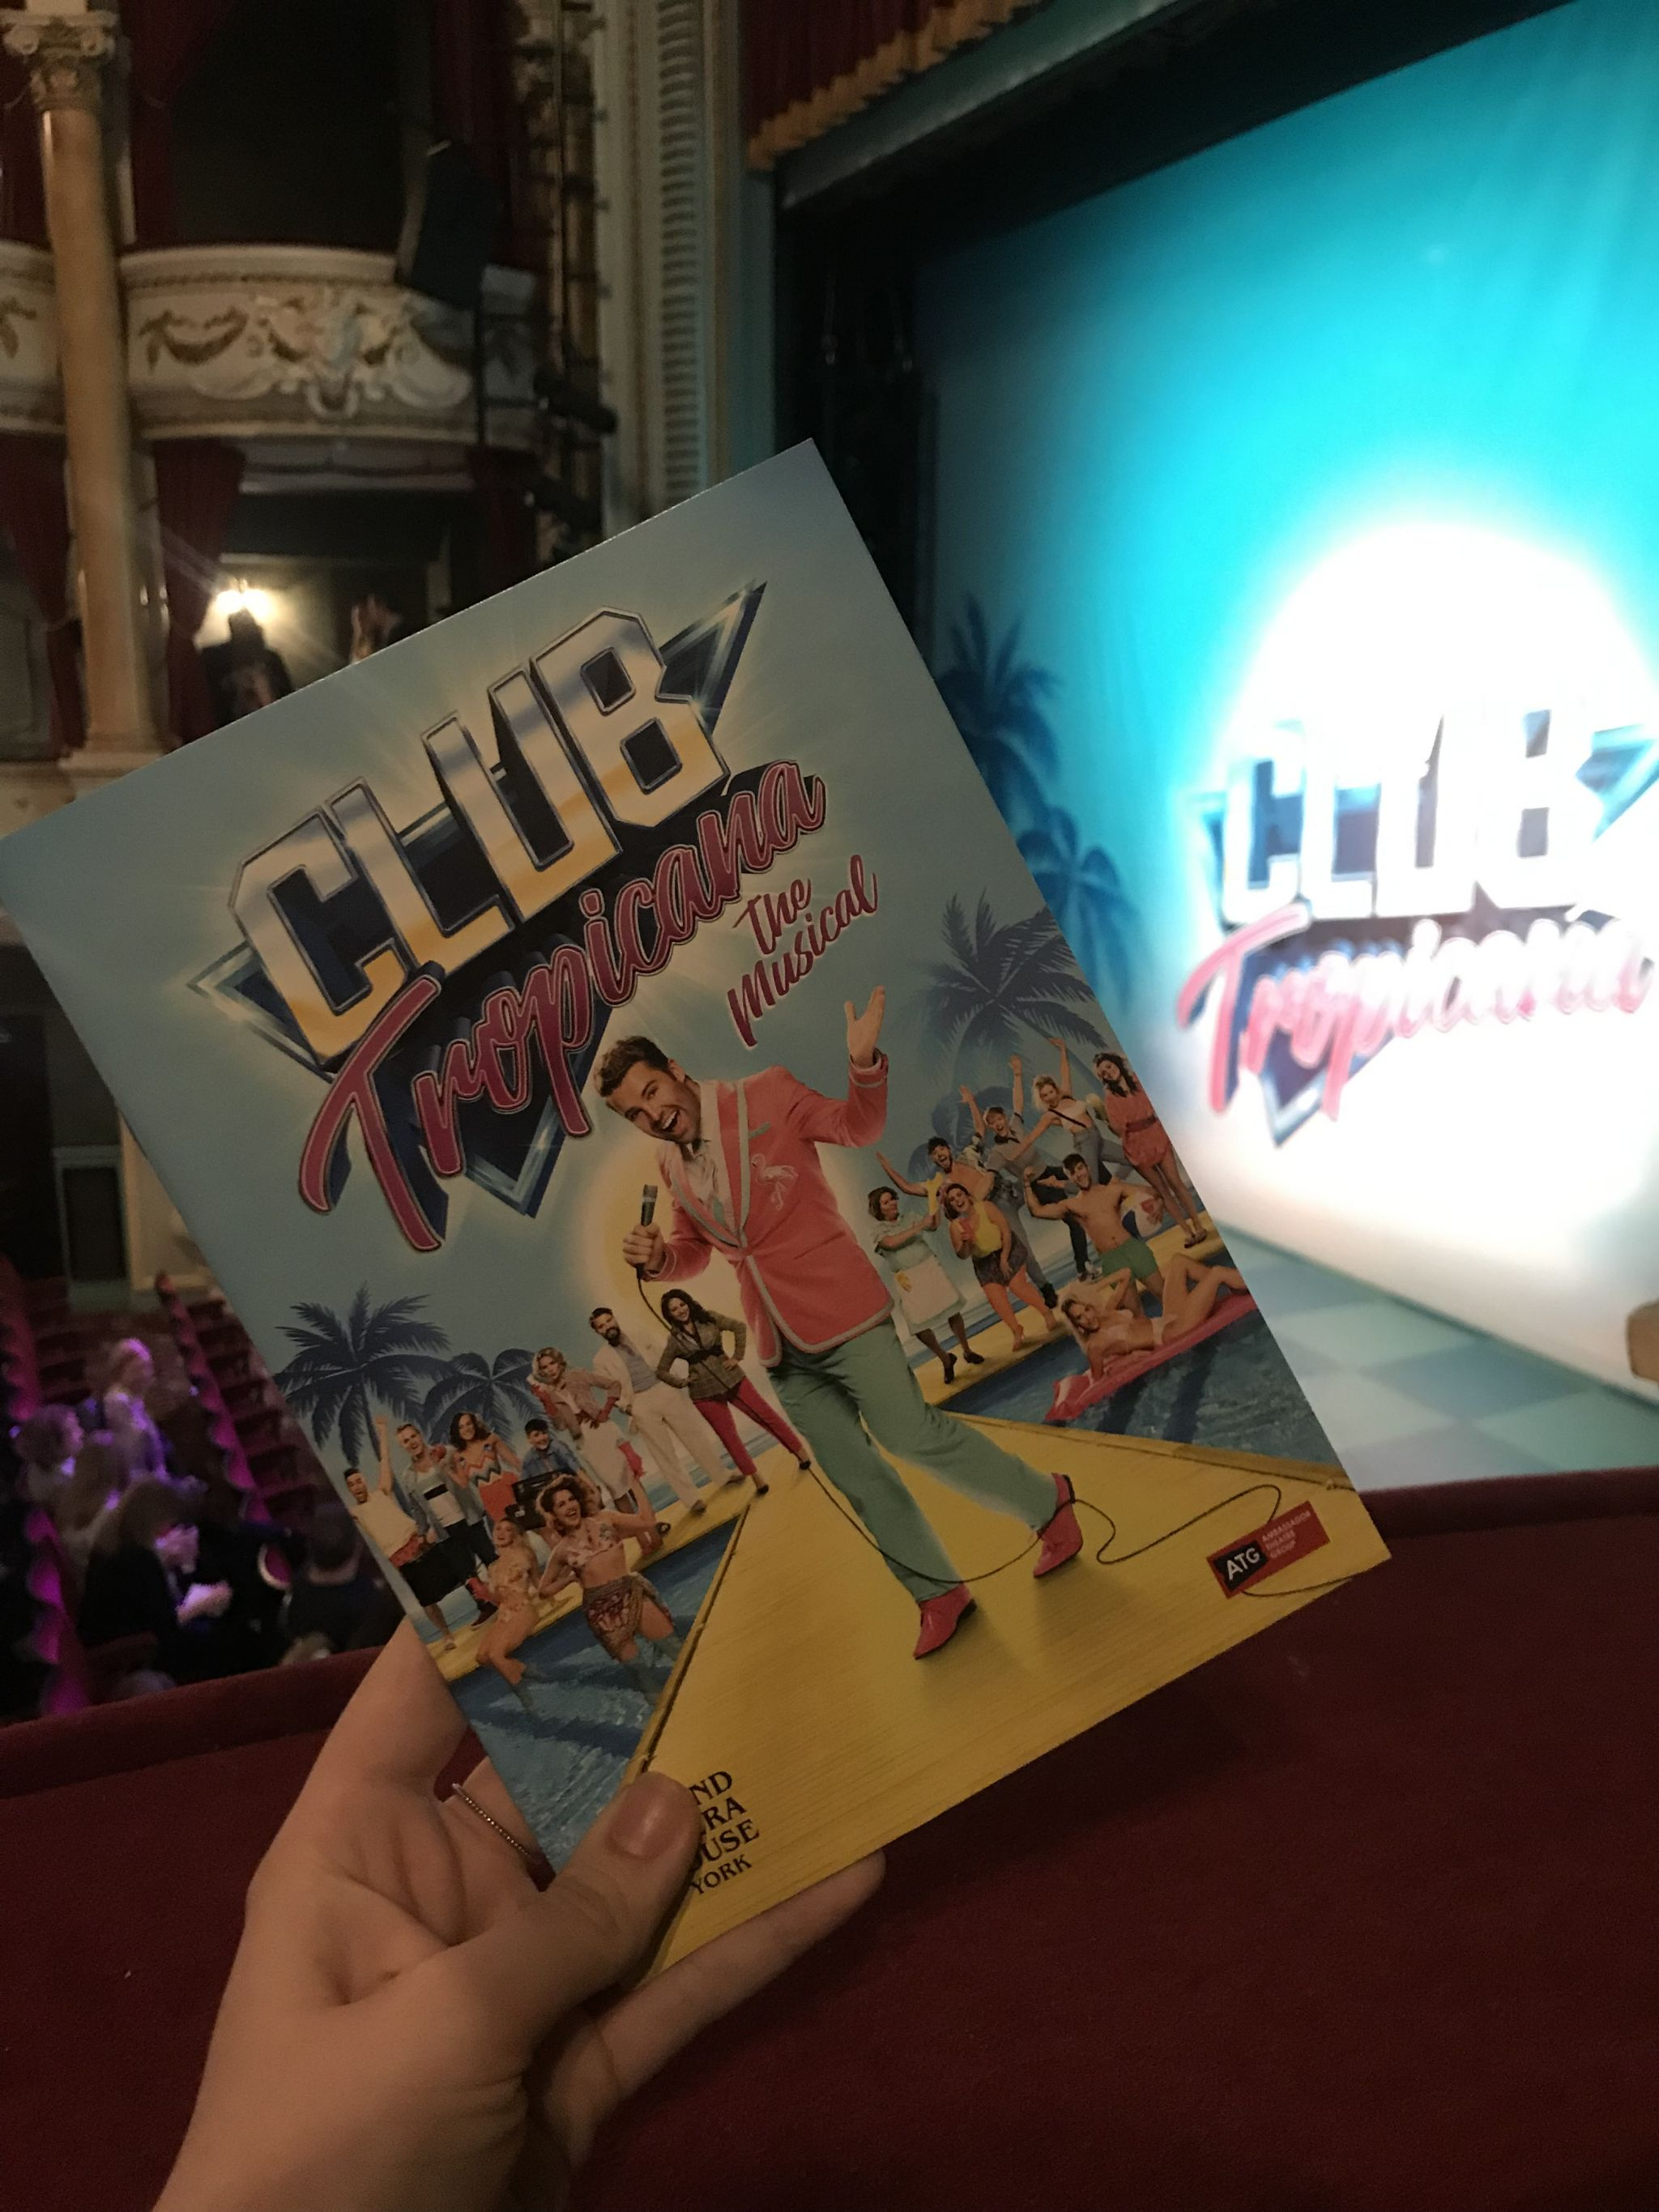 Club Tropicana musical programme and set